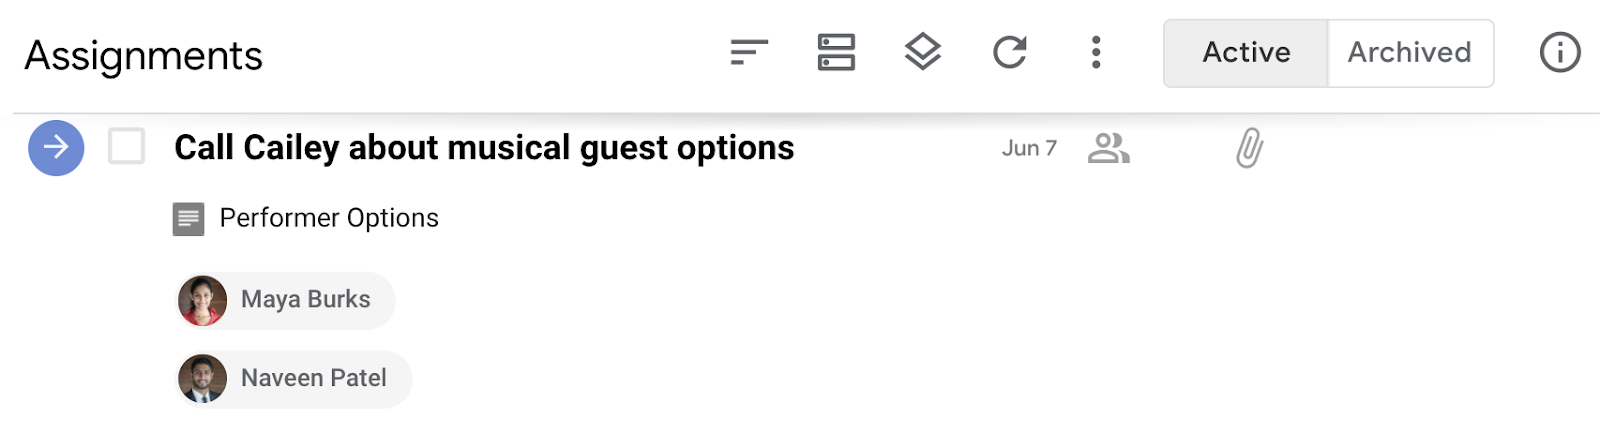 Assigned tasks in the Assignments queue in GQueues